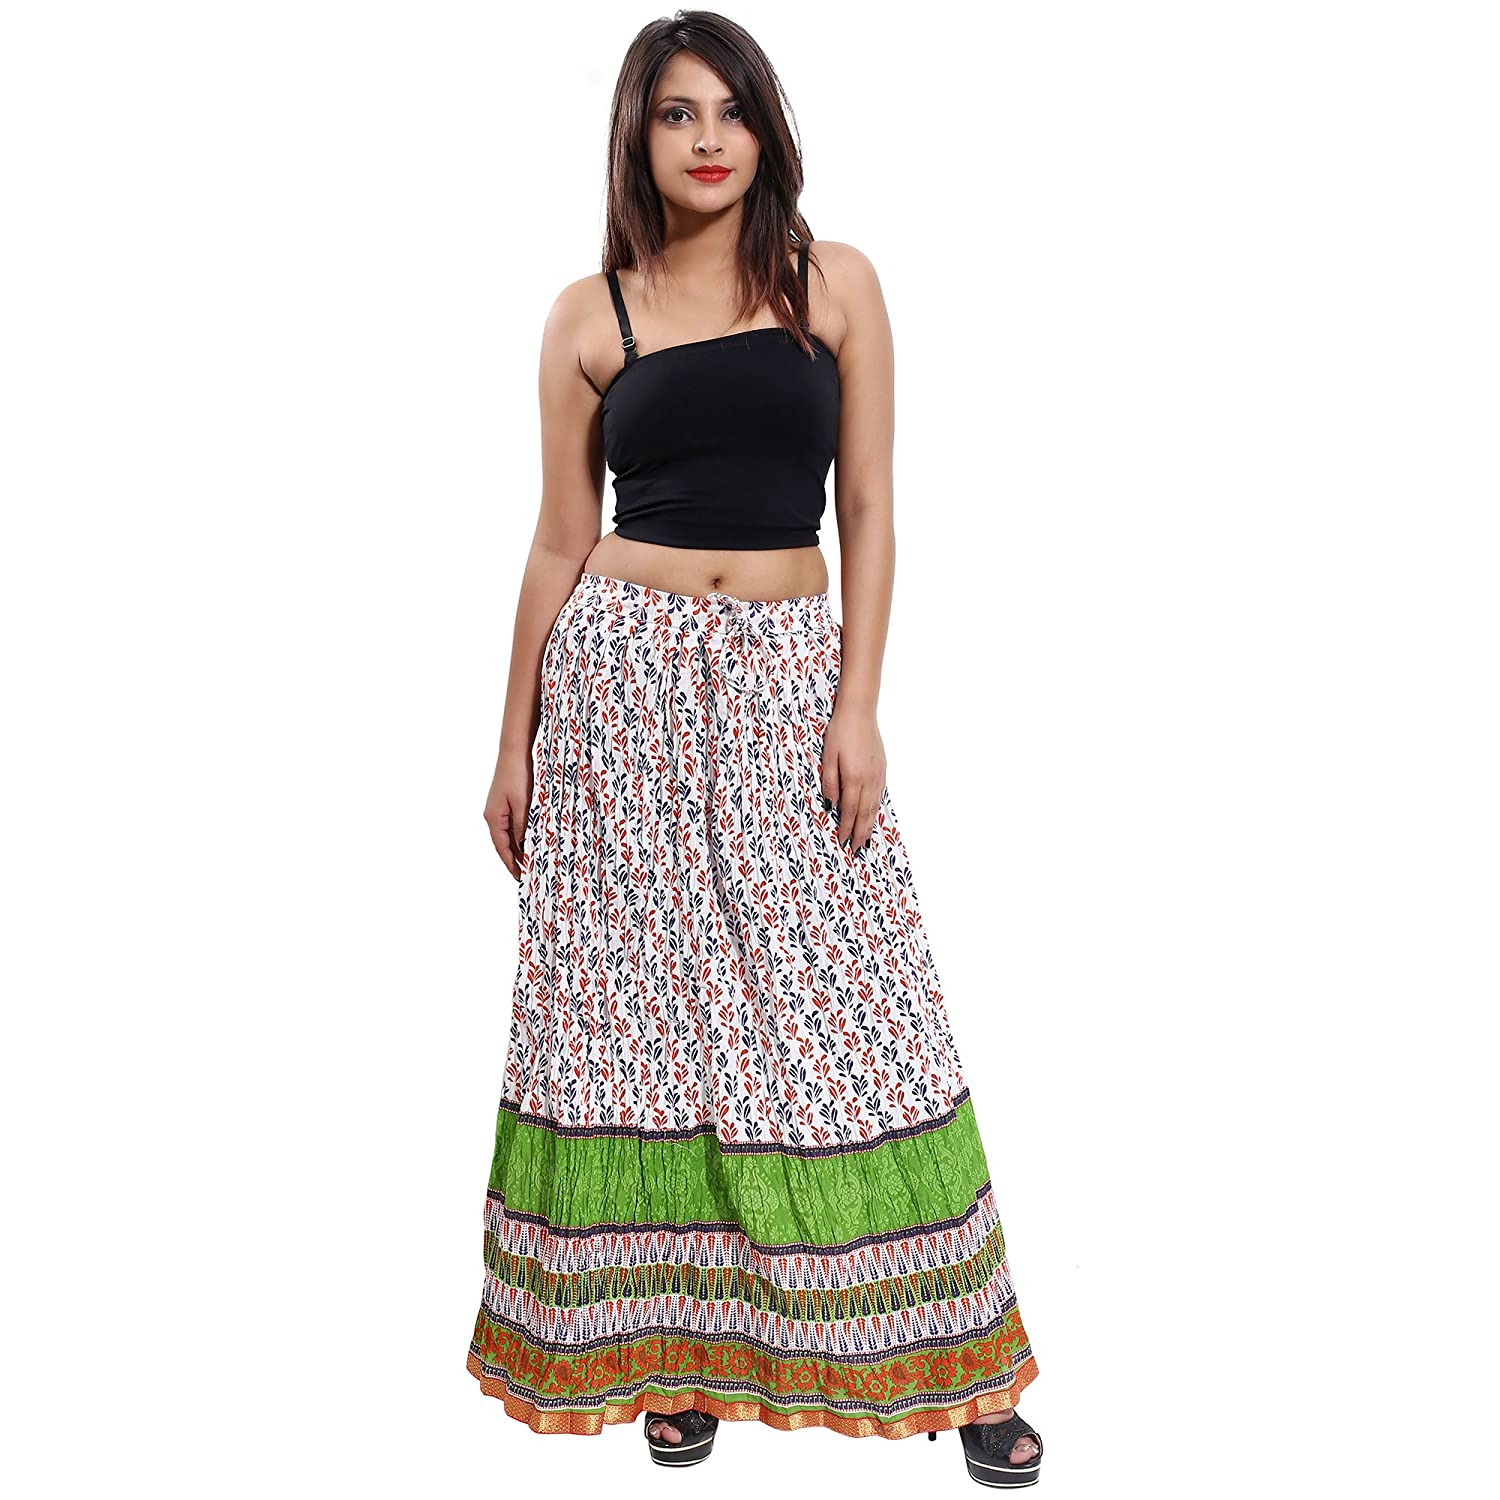 3cb7d3176 Indian 100% Cotton Gaurangi Women's Cotton Designer Floral Printed Long  Skirt at Amazon Women's Clothing store: